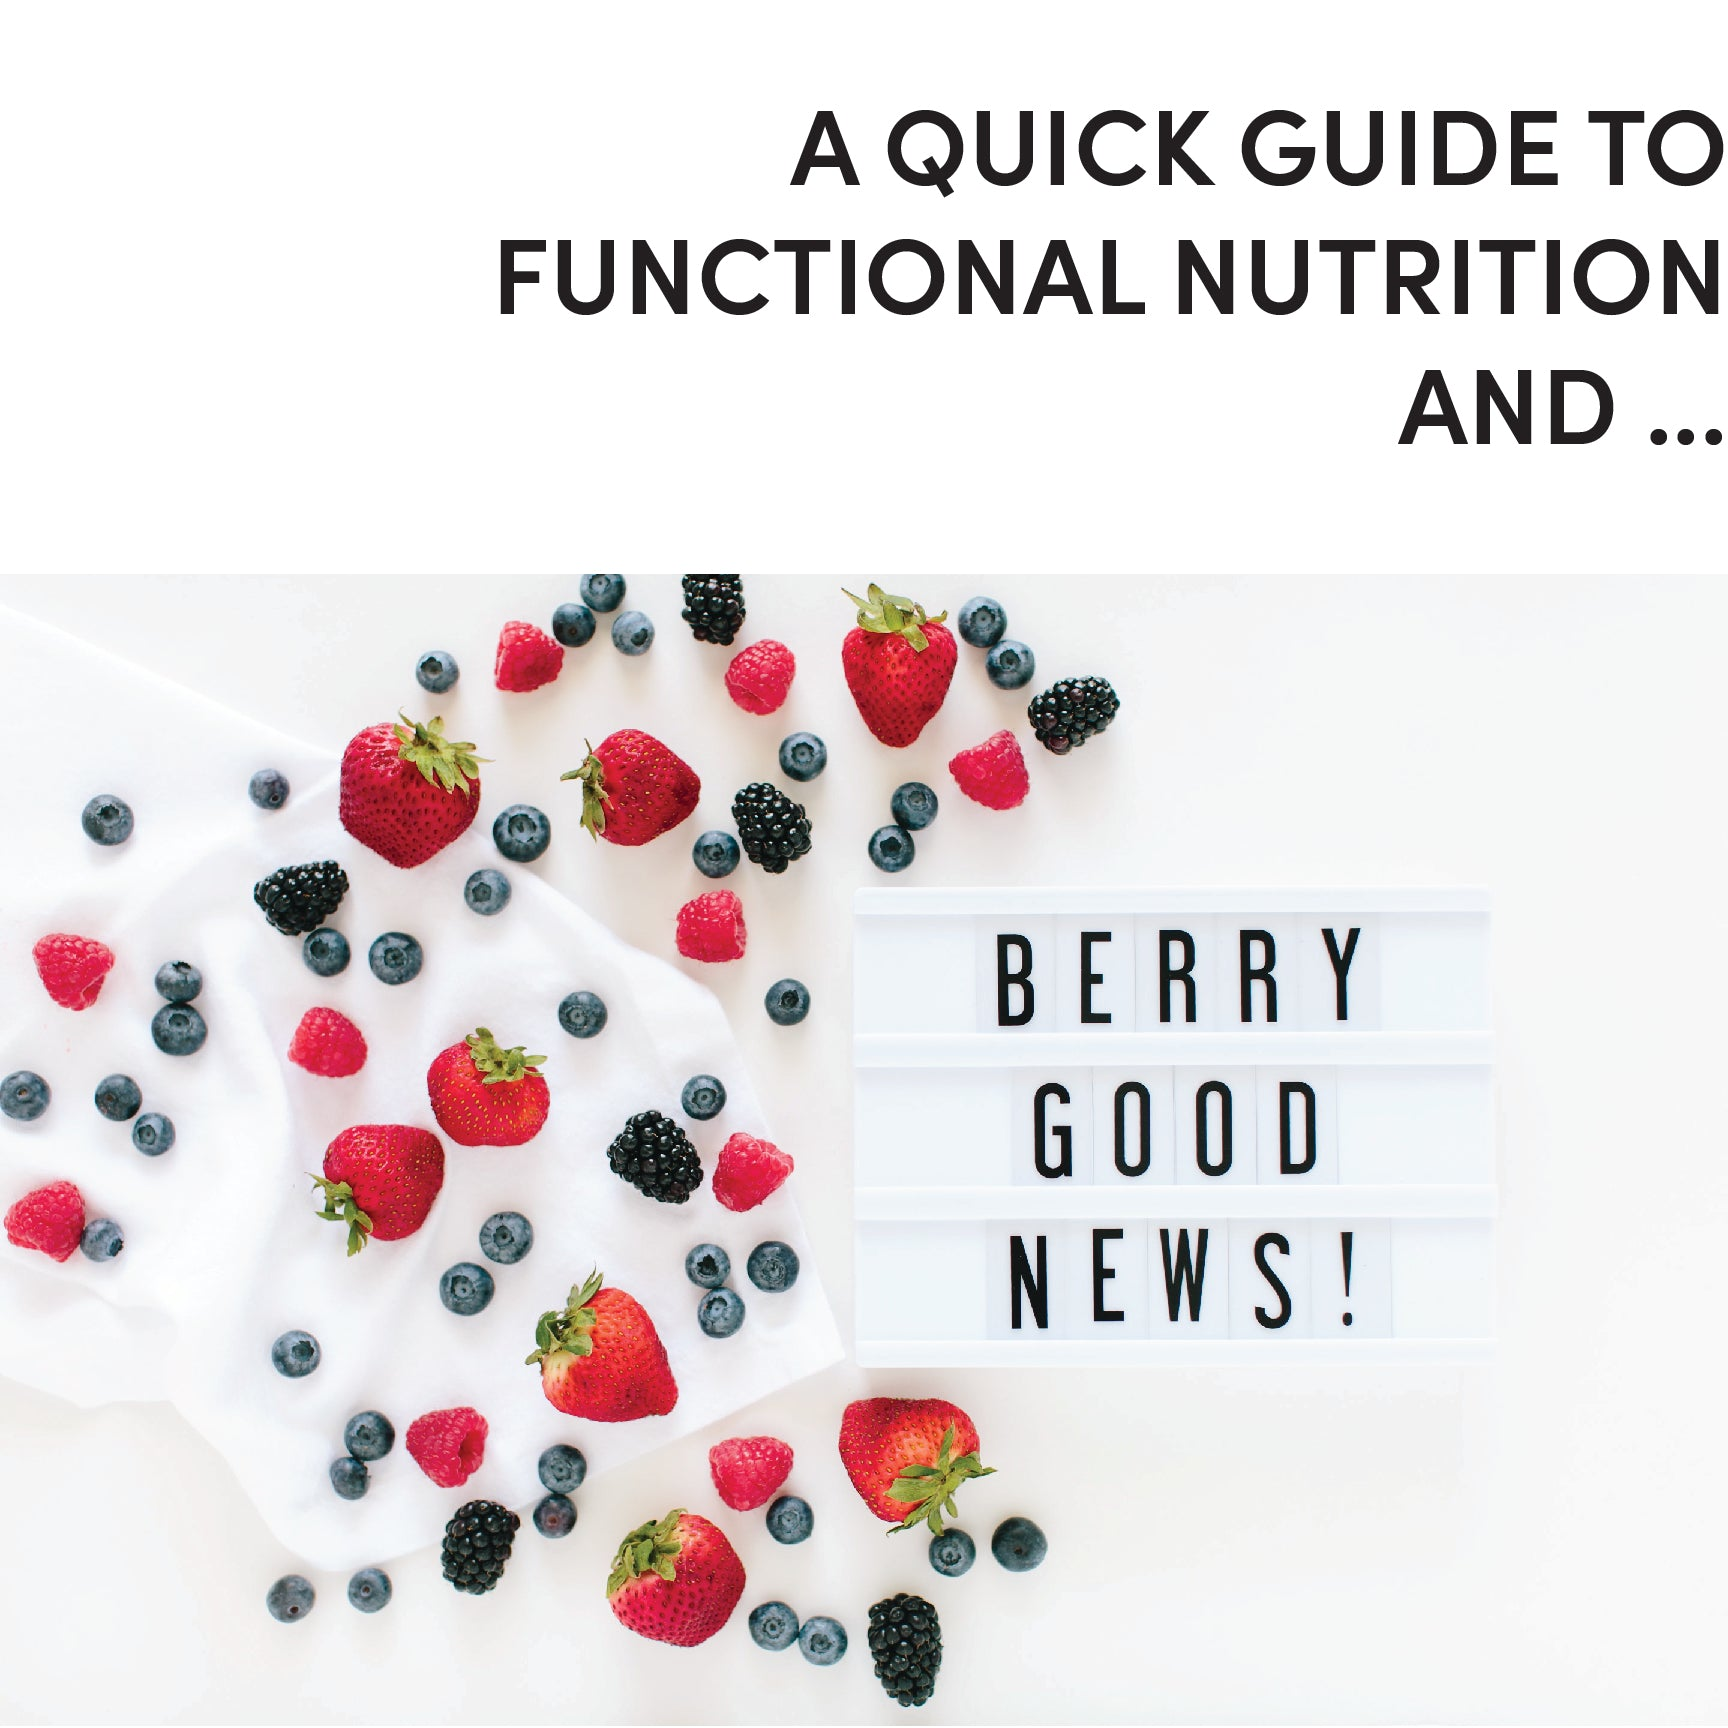 A Quick Guide to Functional Nutrition